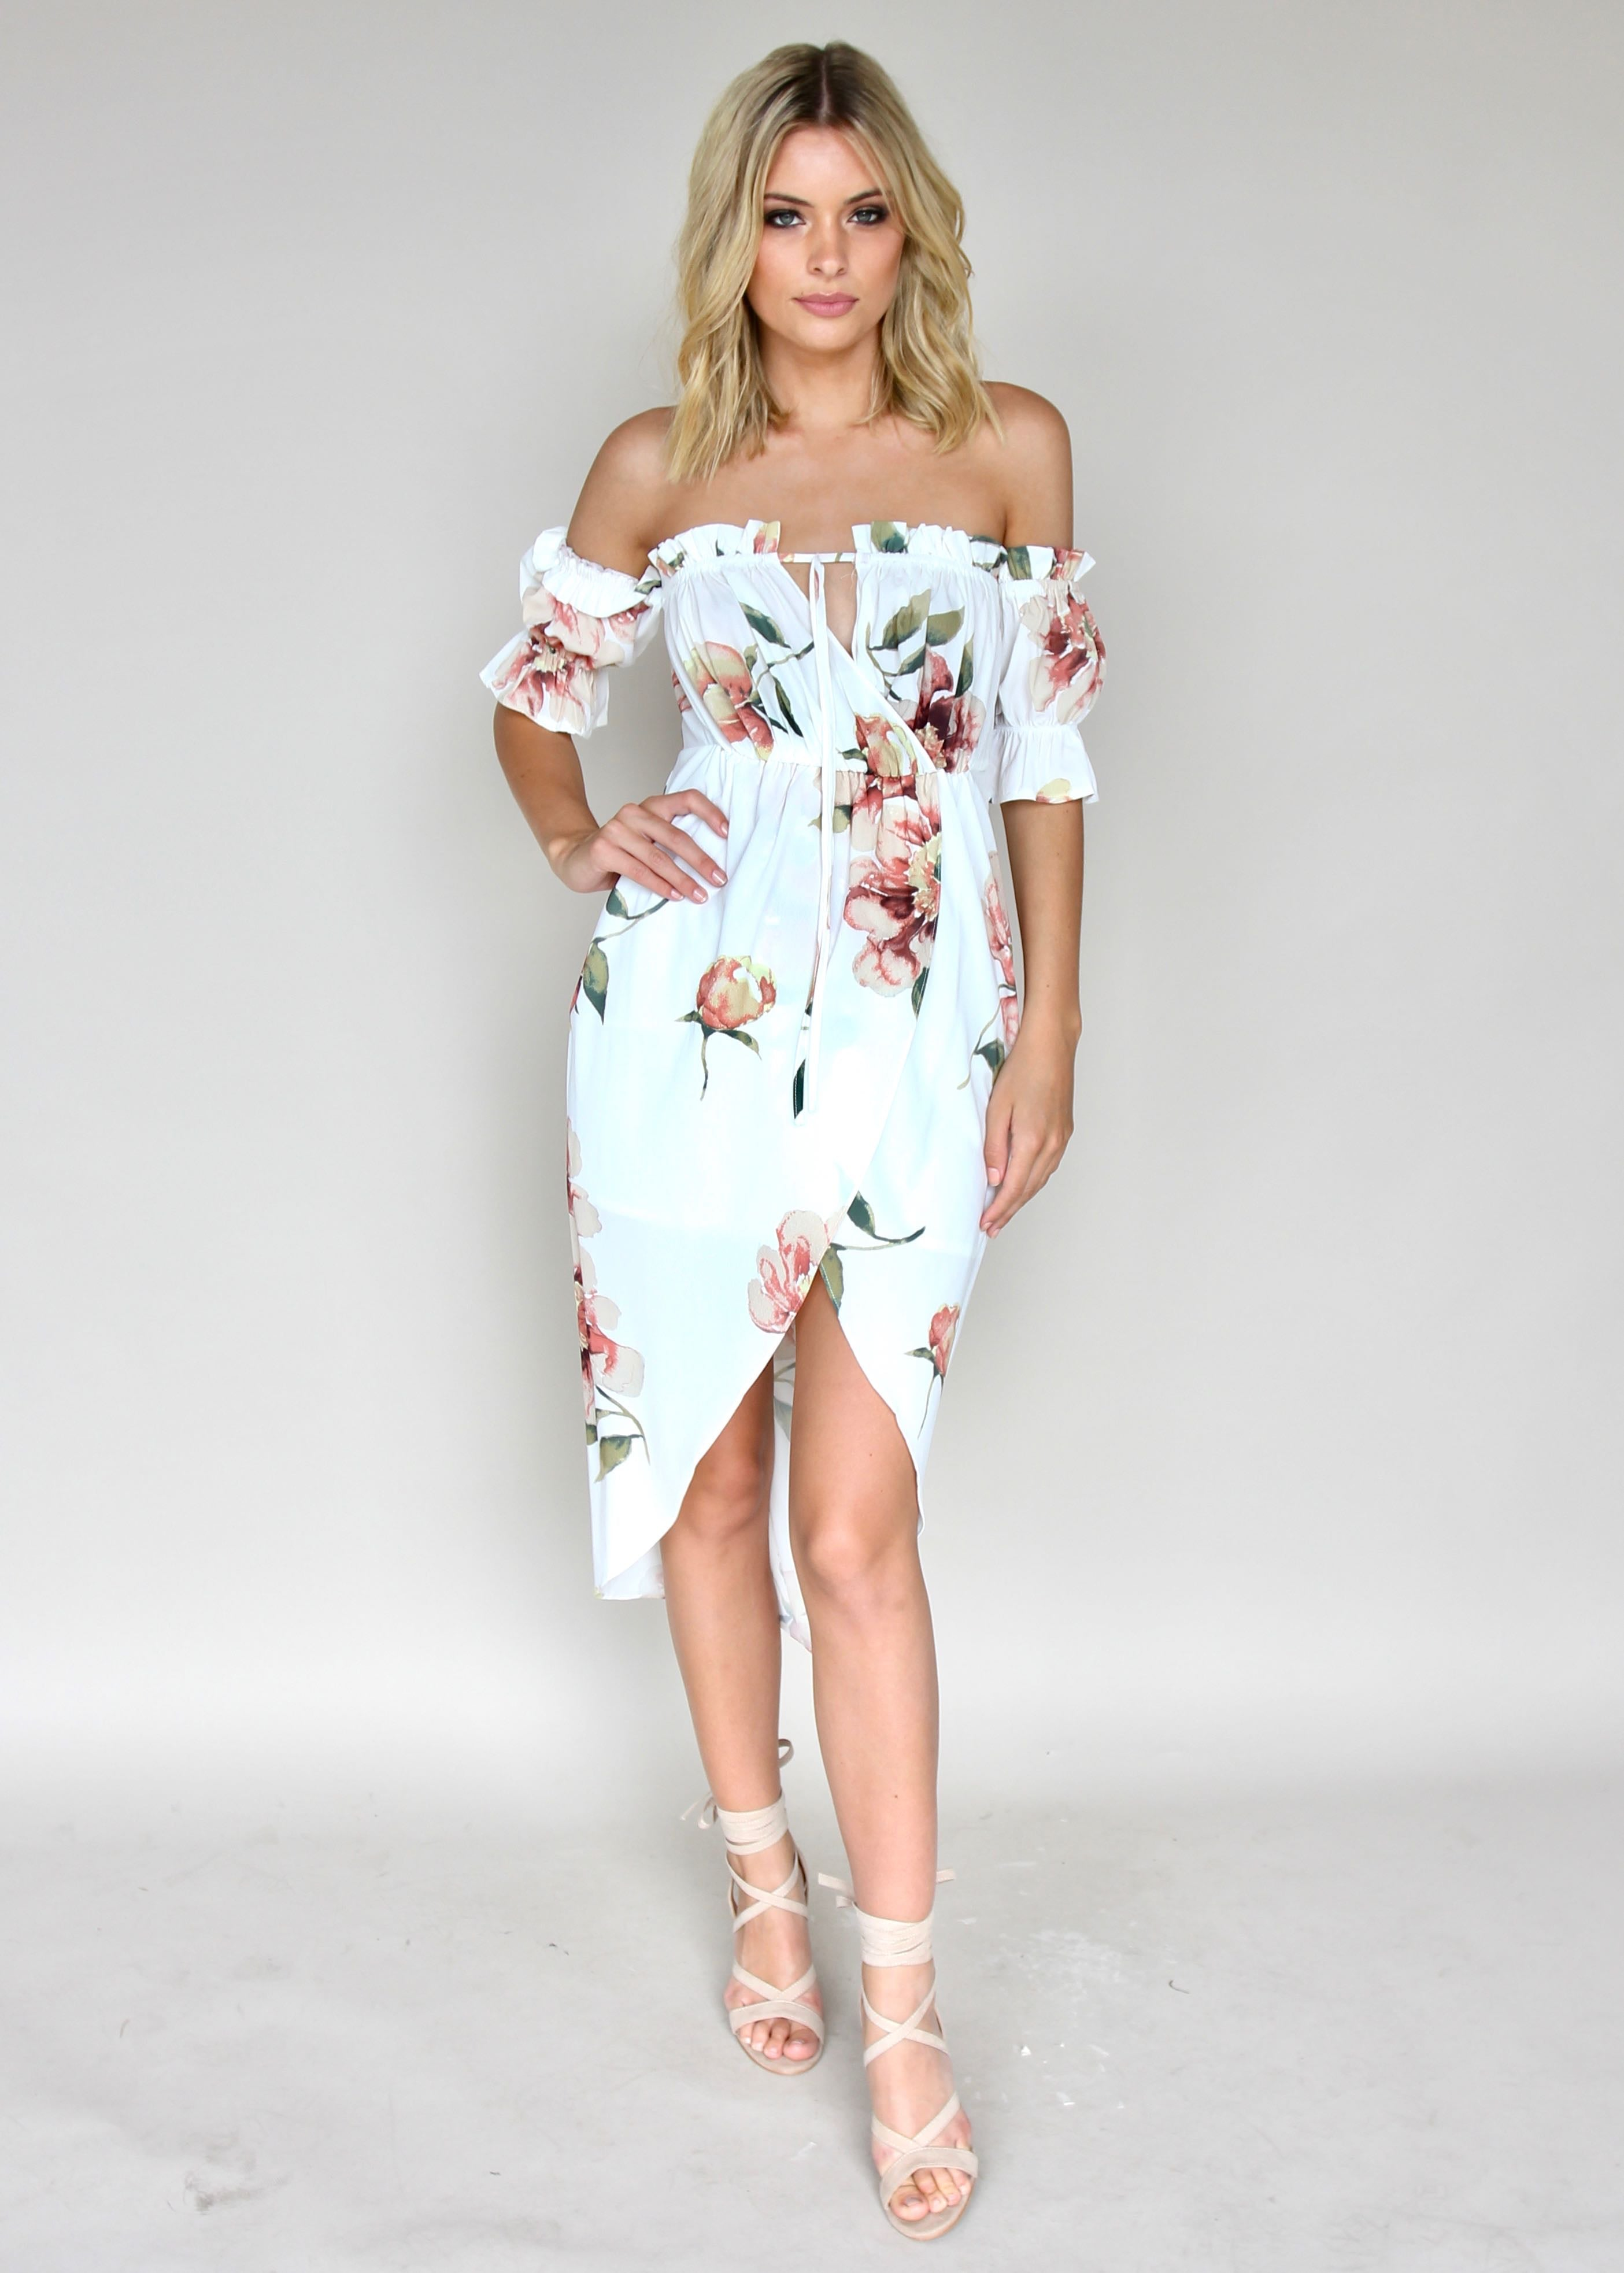 Kiss & Tell Midi Dress - White Floral